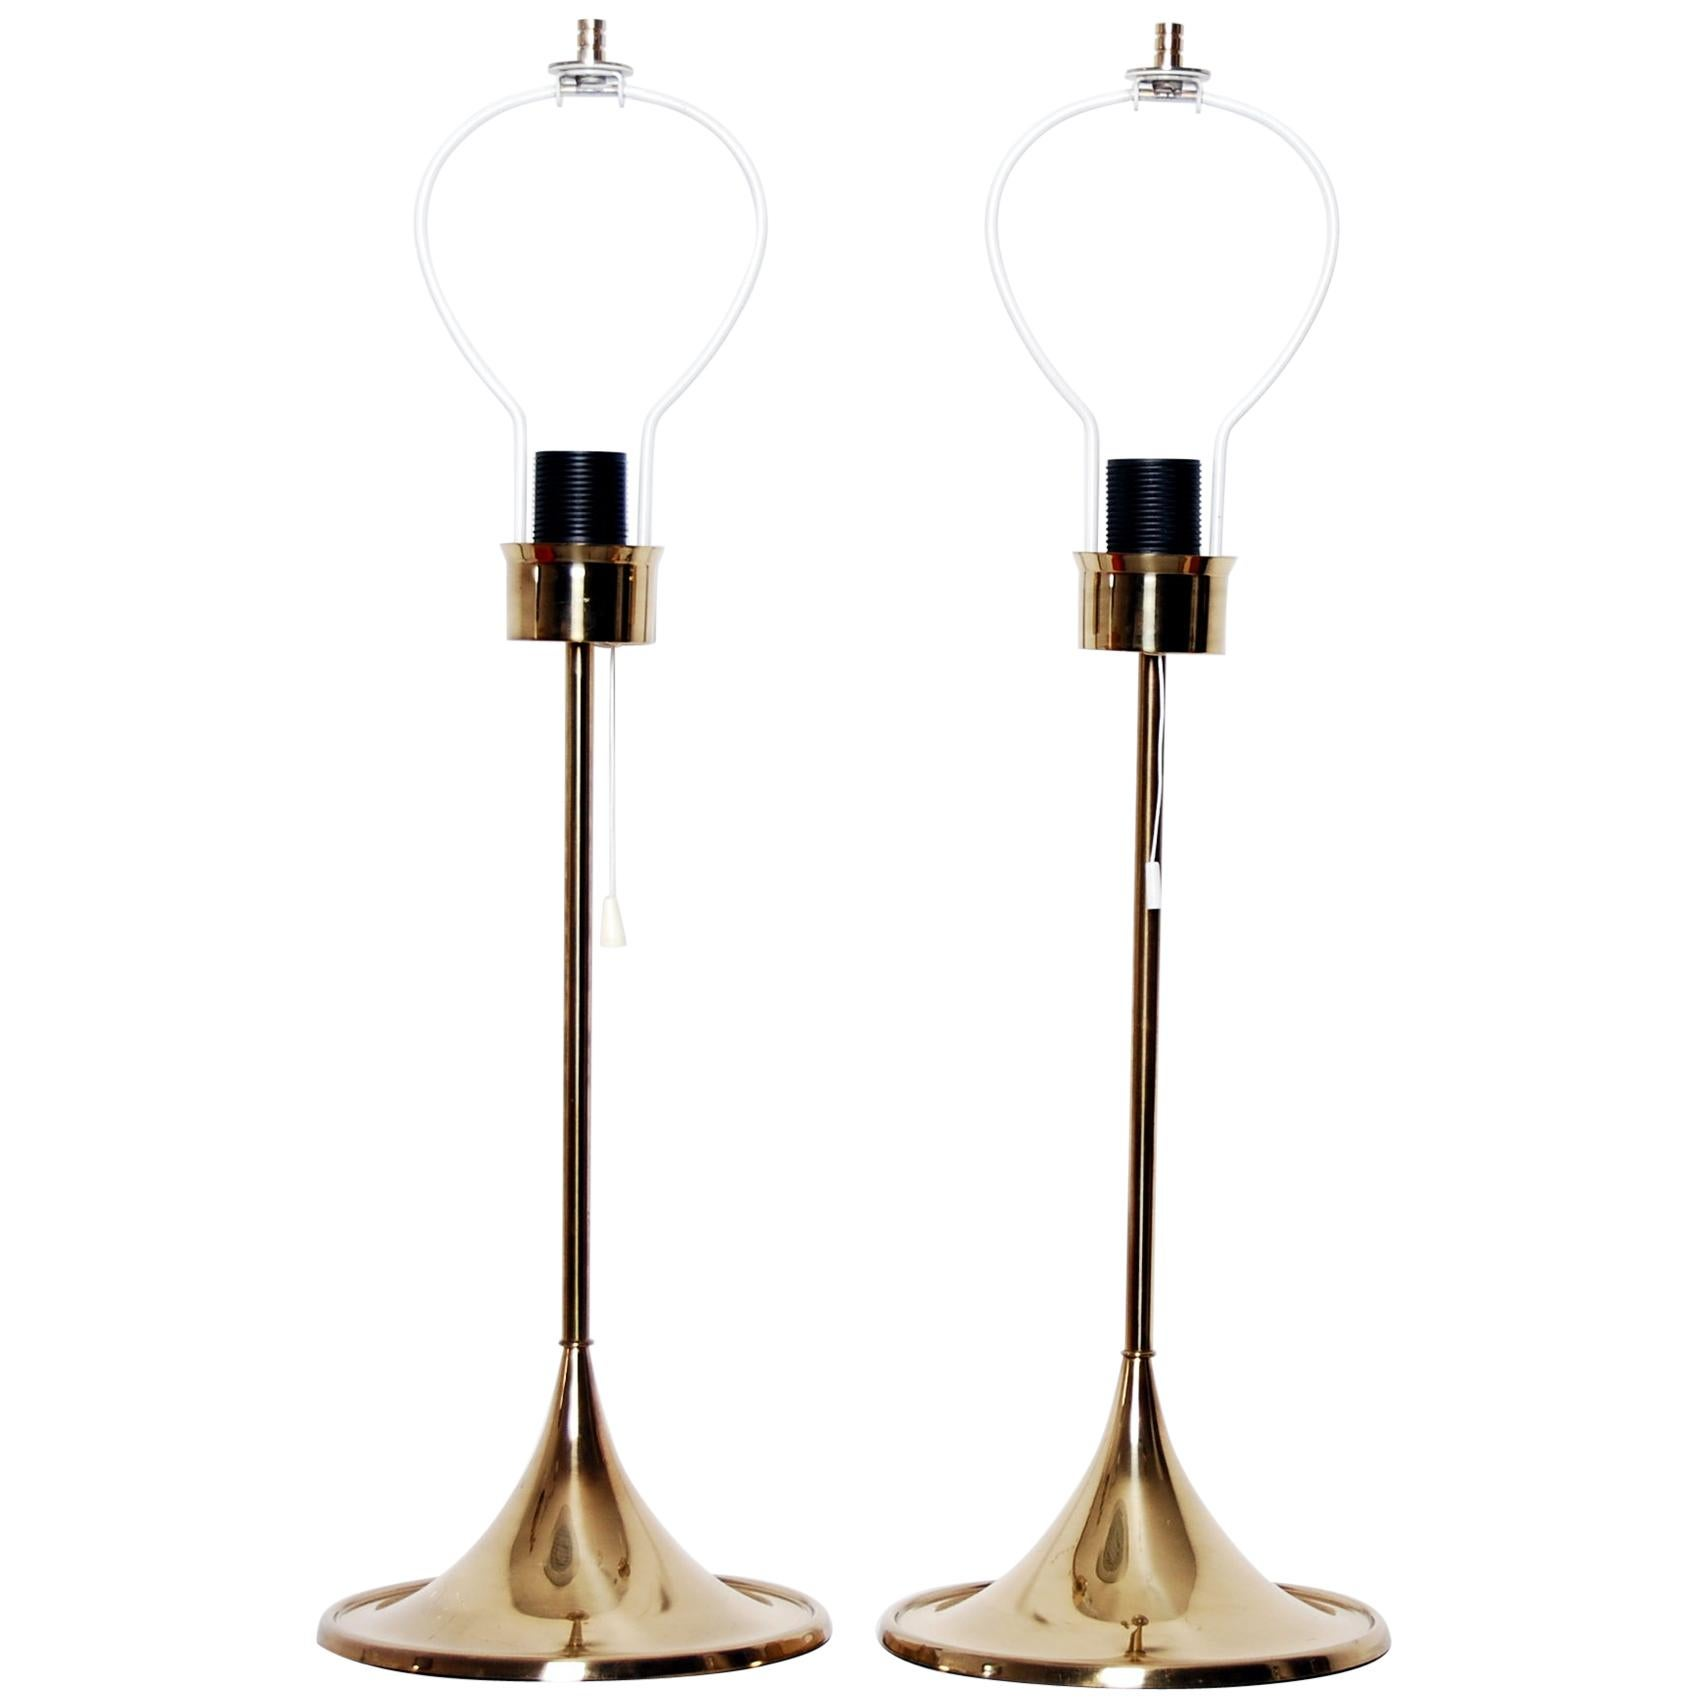 Midcentury Table Lamps in Brass by Bergboms, Sweden, 1960s